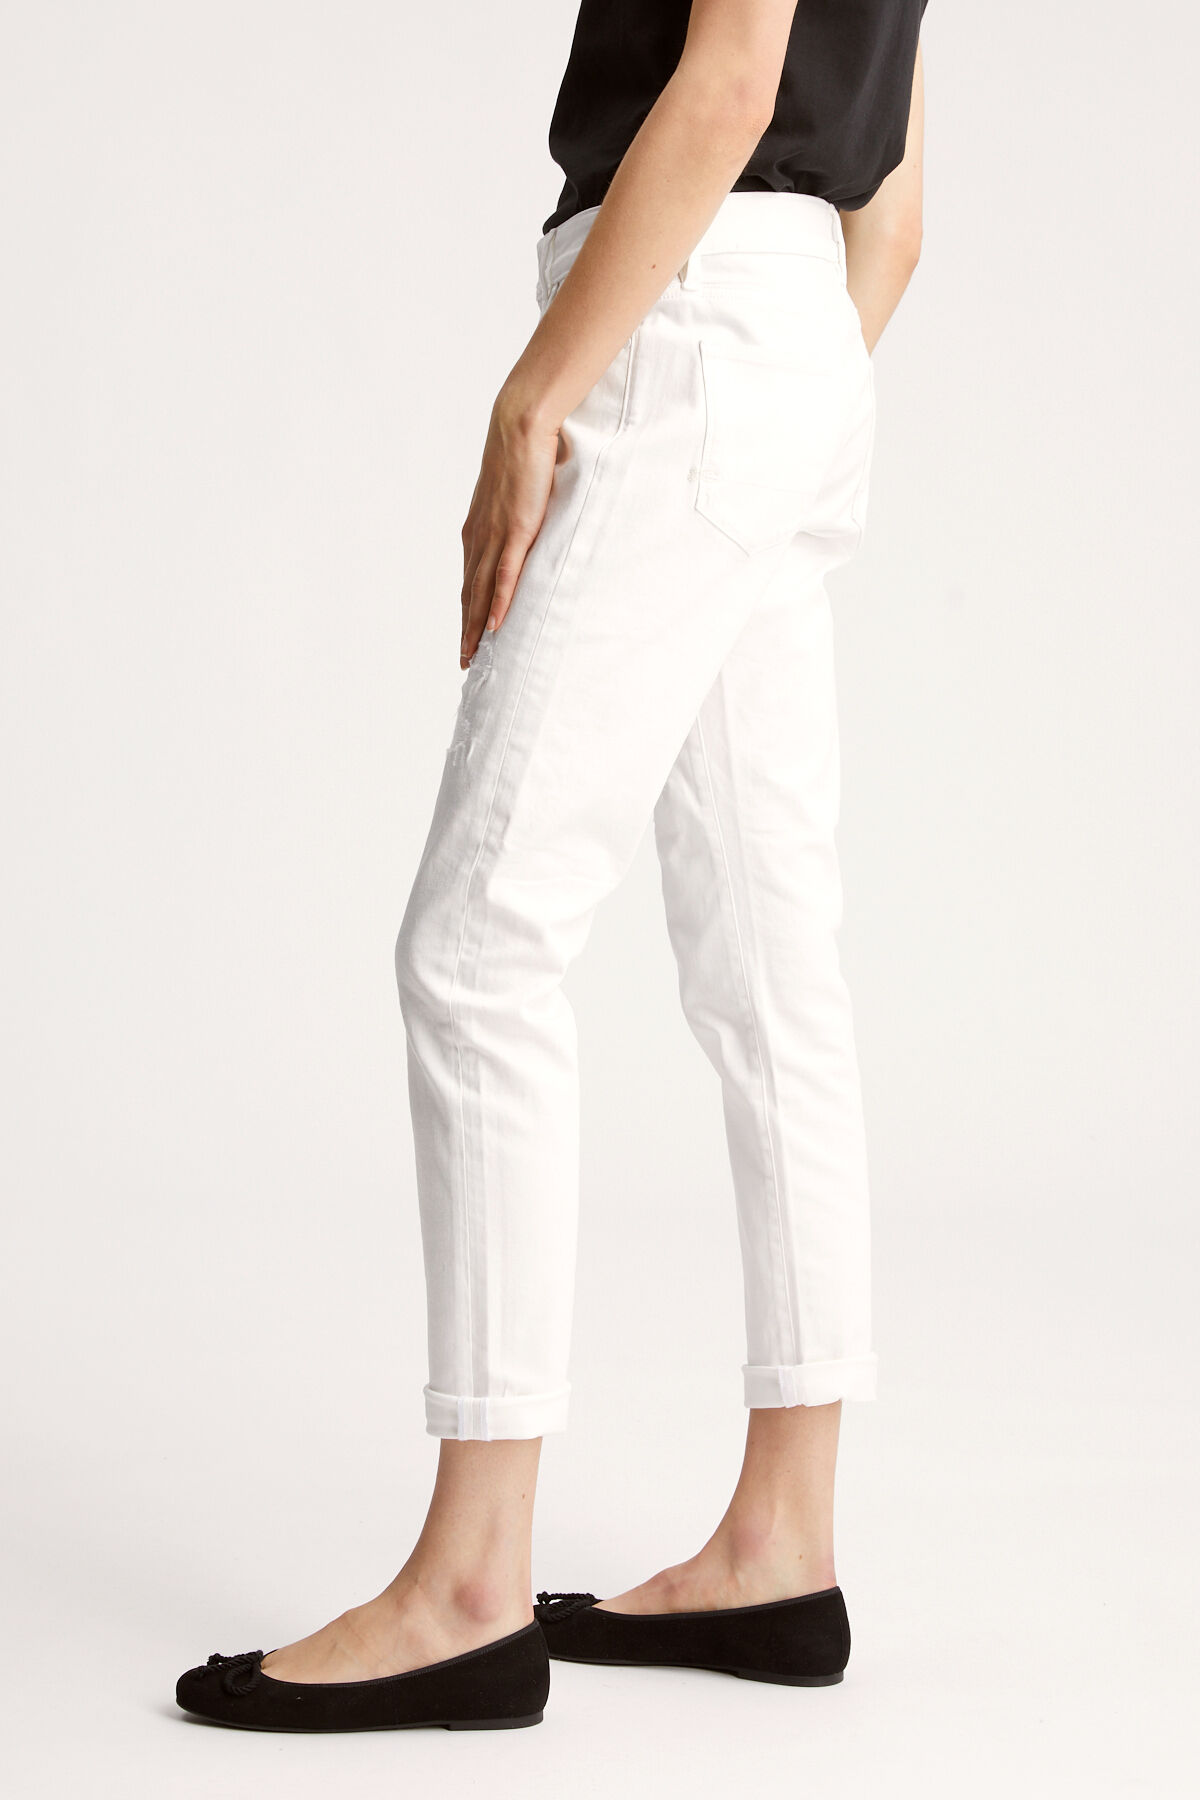 MONROE White Rip & Repair Denim - Girlfriend FIt